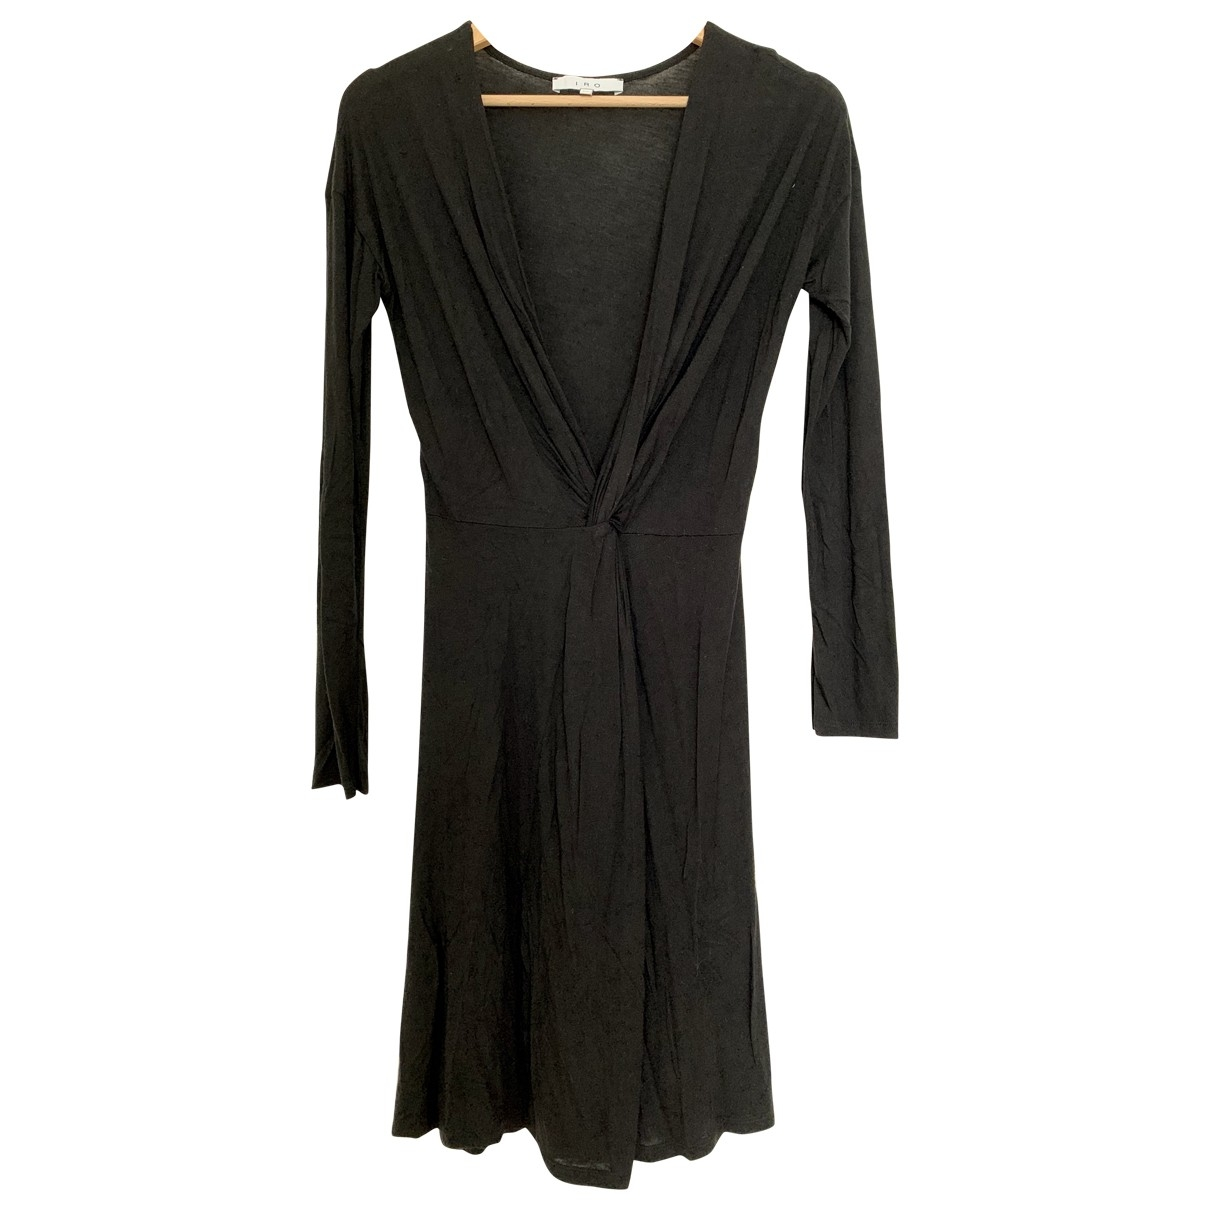 Iro \N Black dress for Women XS International